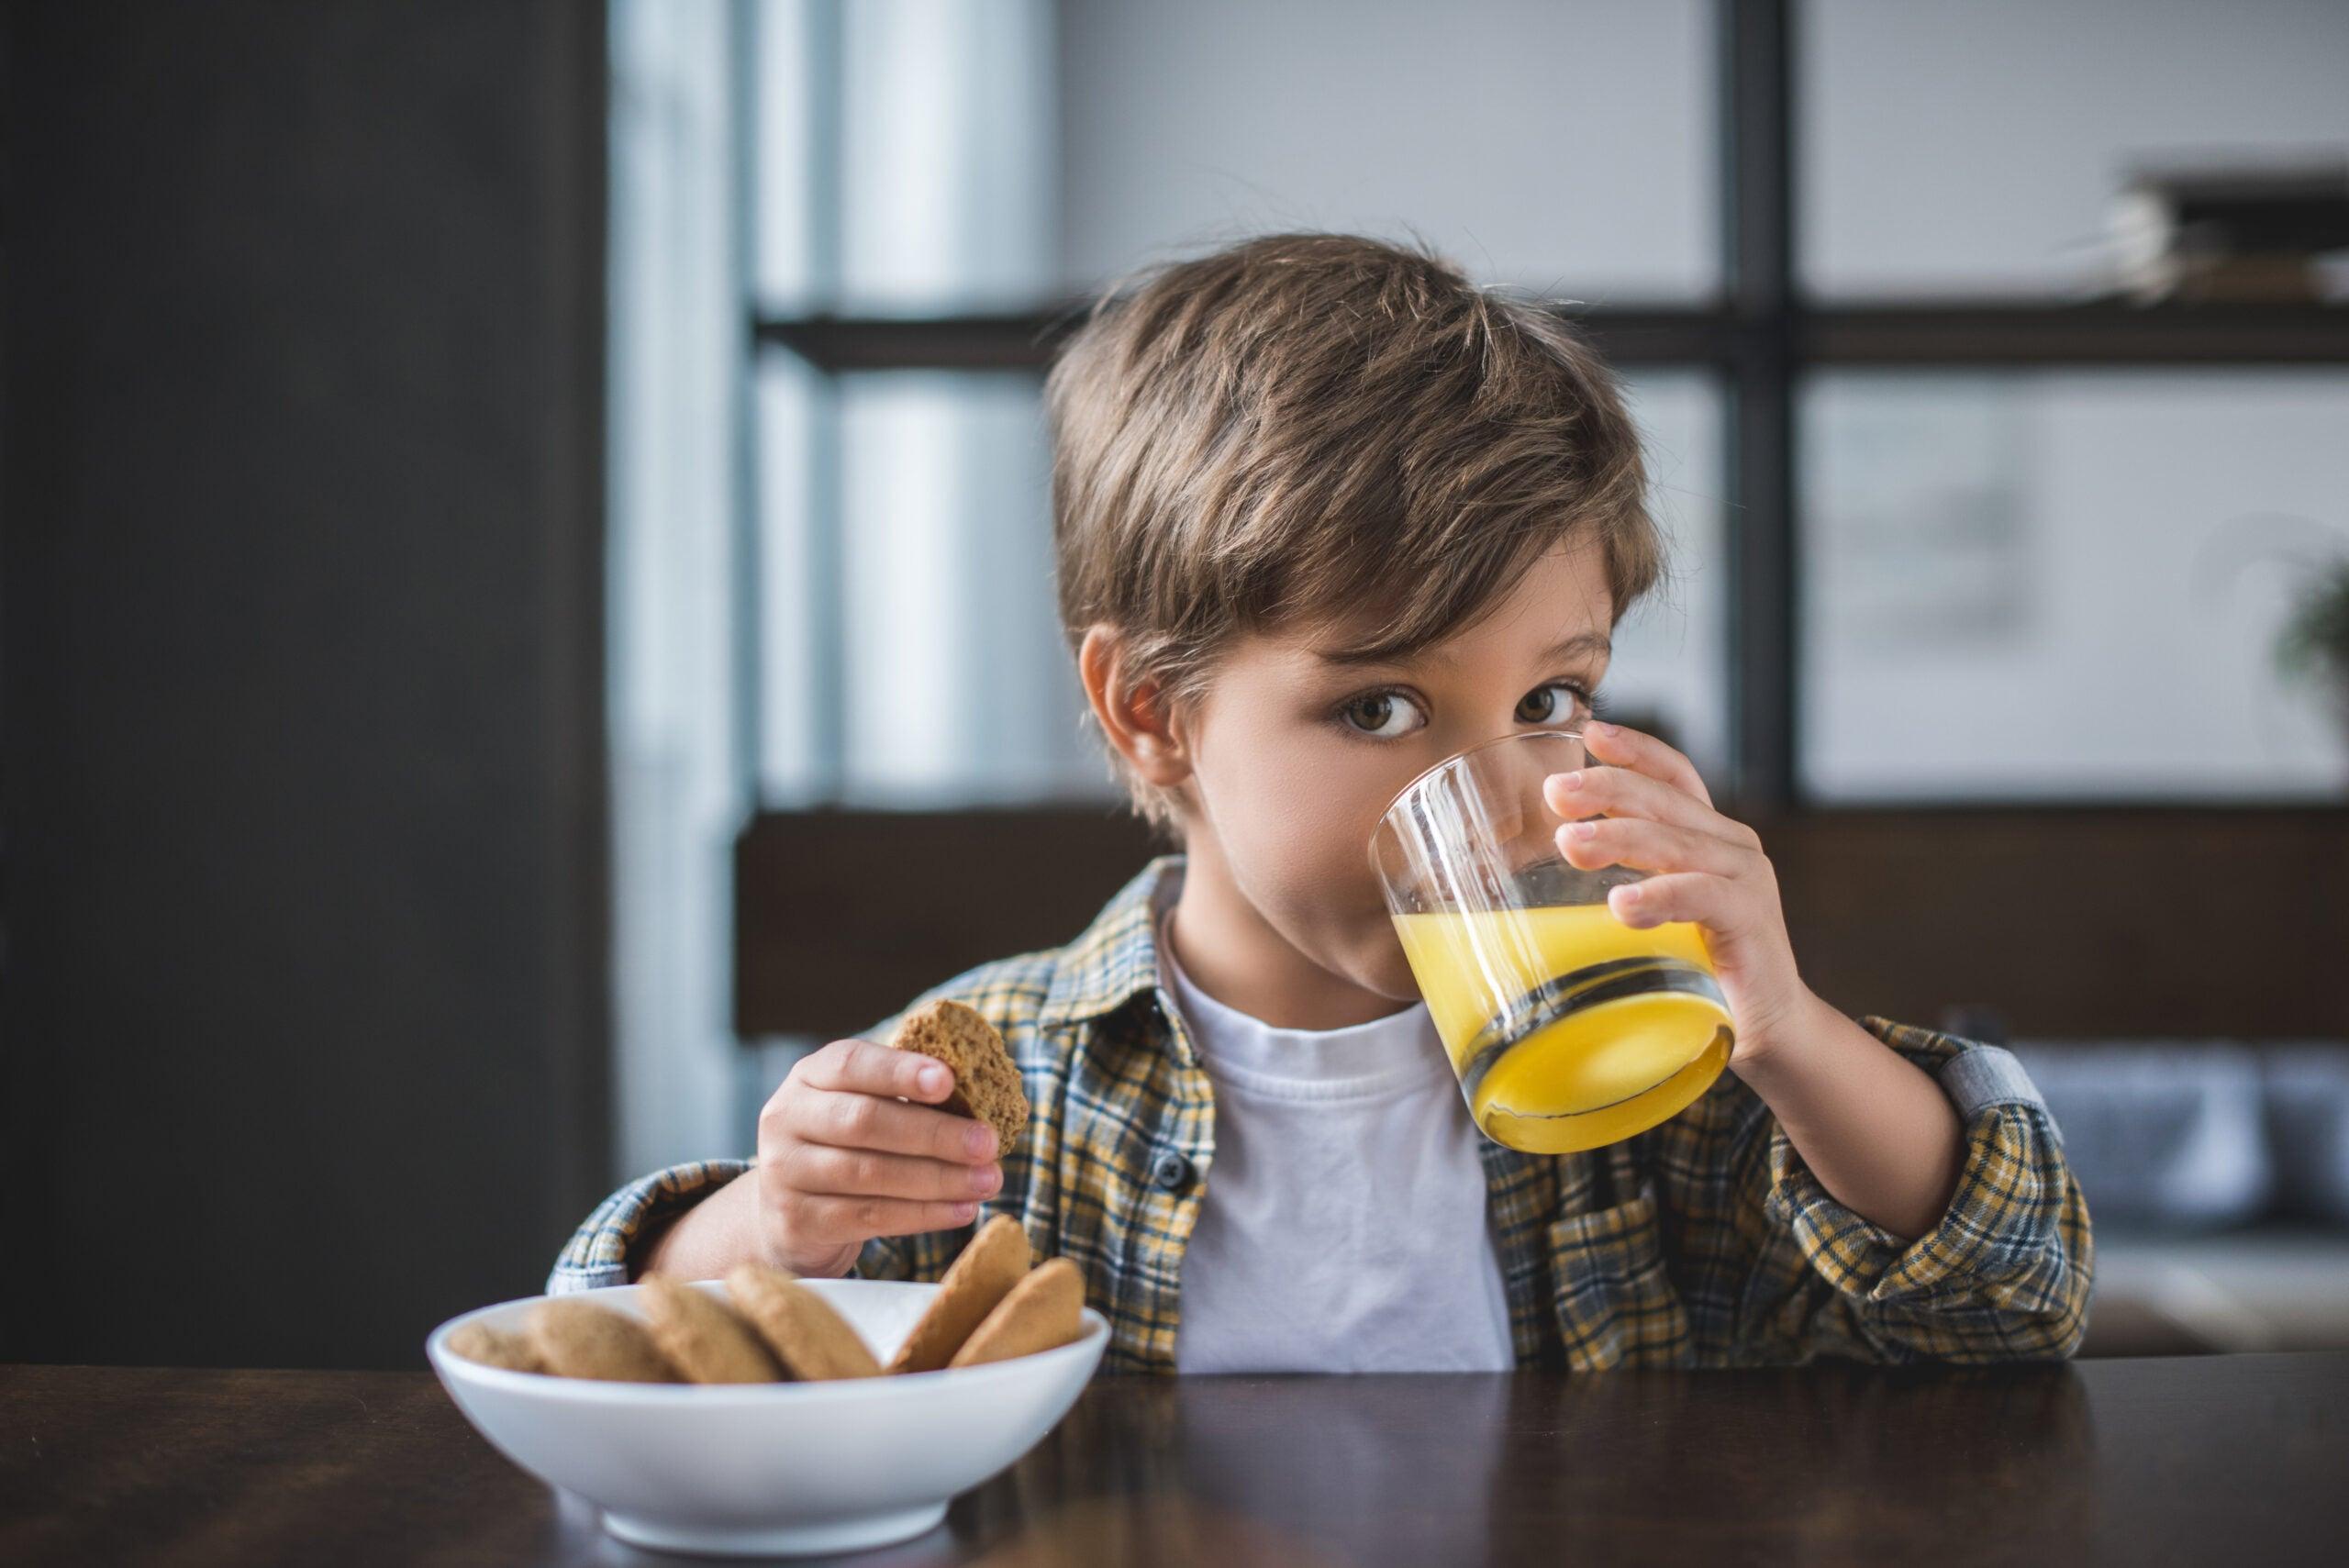 a young boy drinks juice and eats cookies